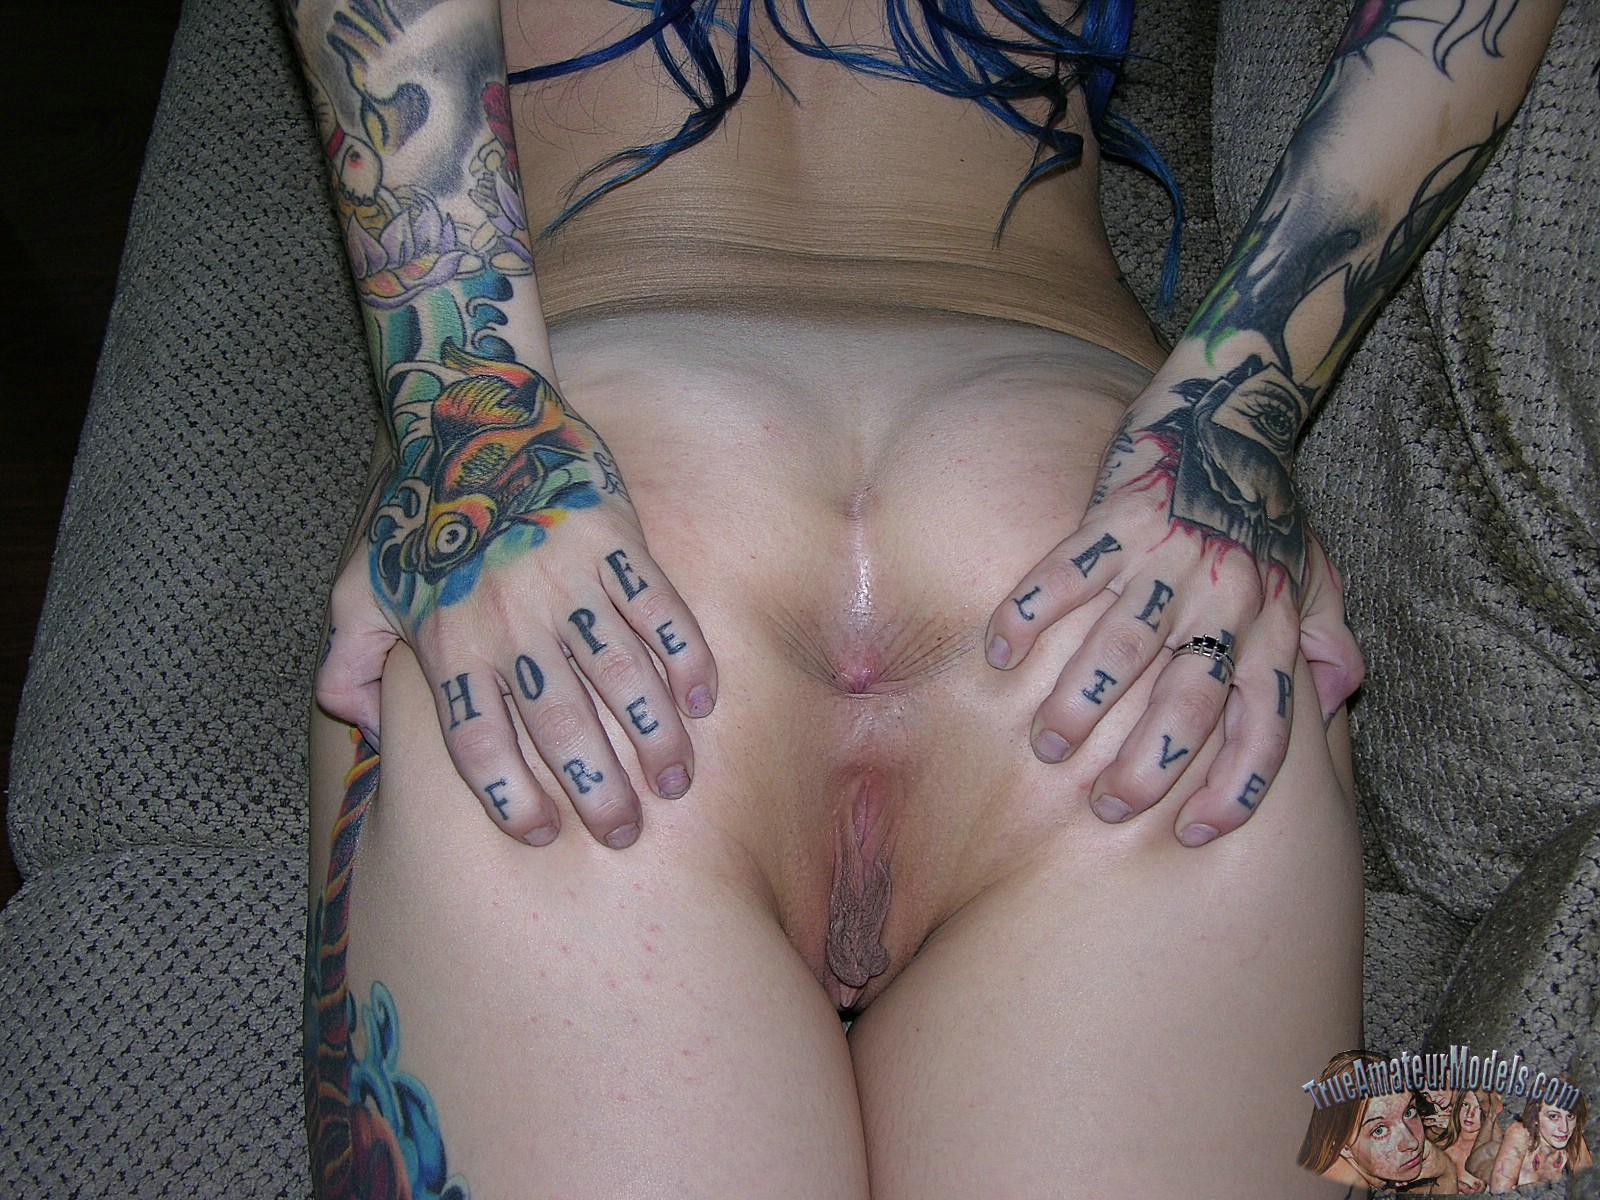 Spread eagle nude tatoo girls